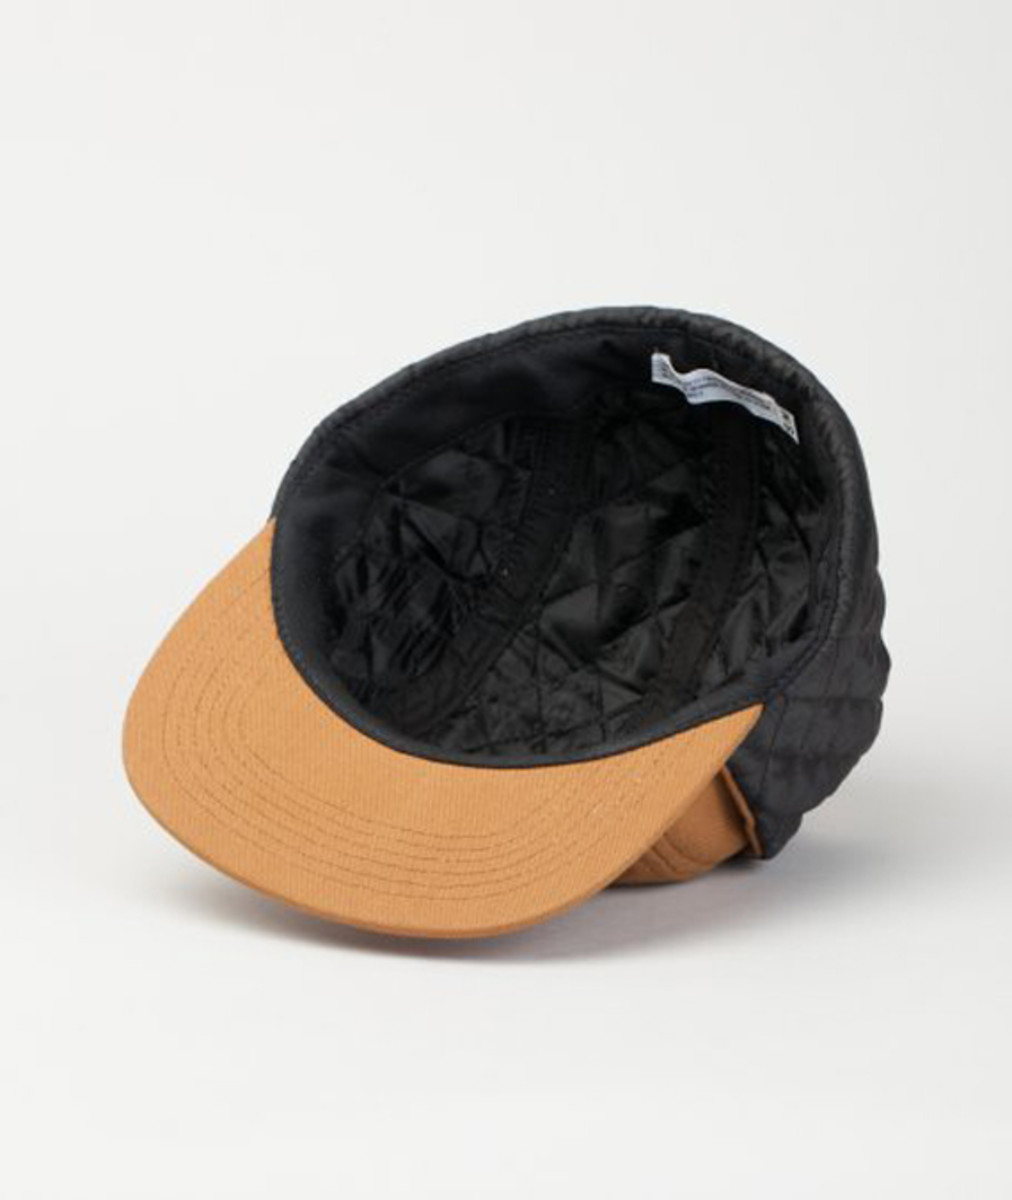 norse-projects-earflap-duck-canvas-cap-07